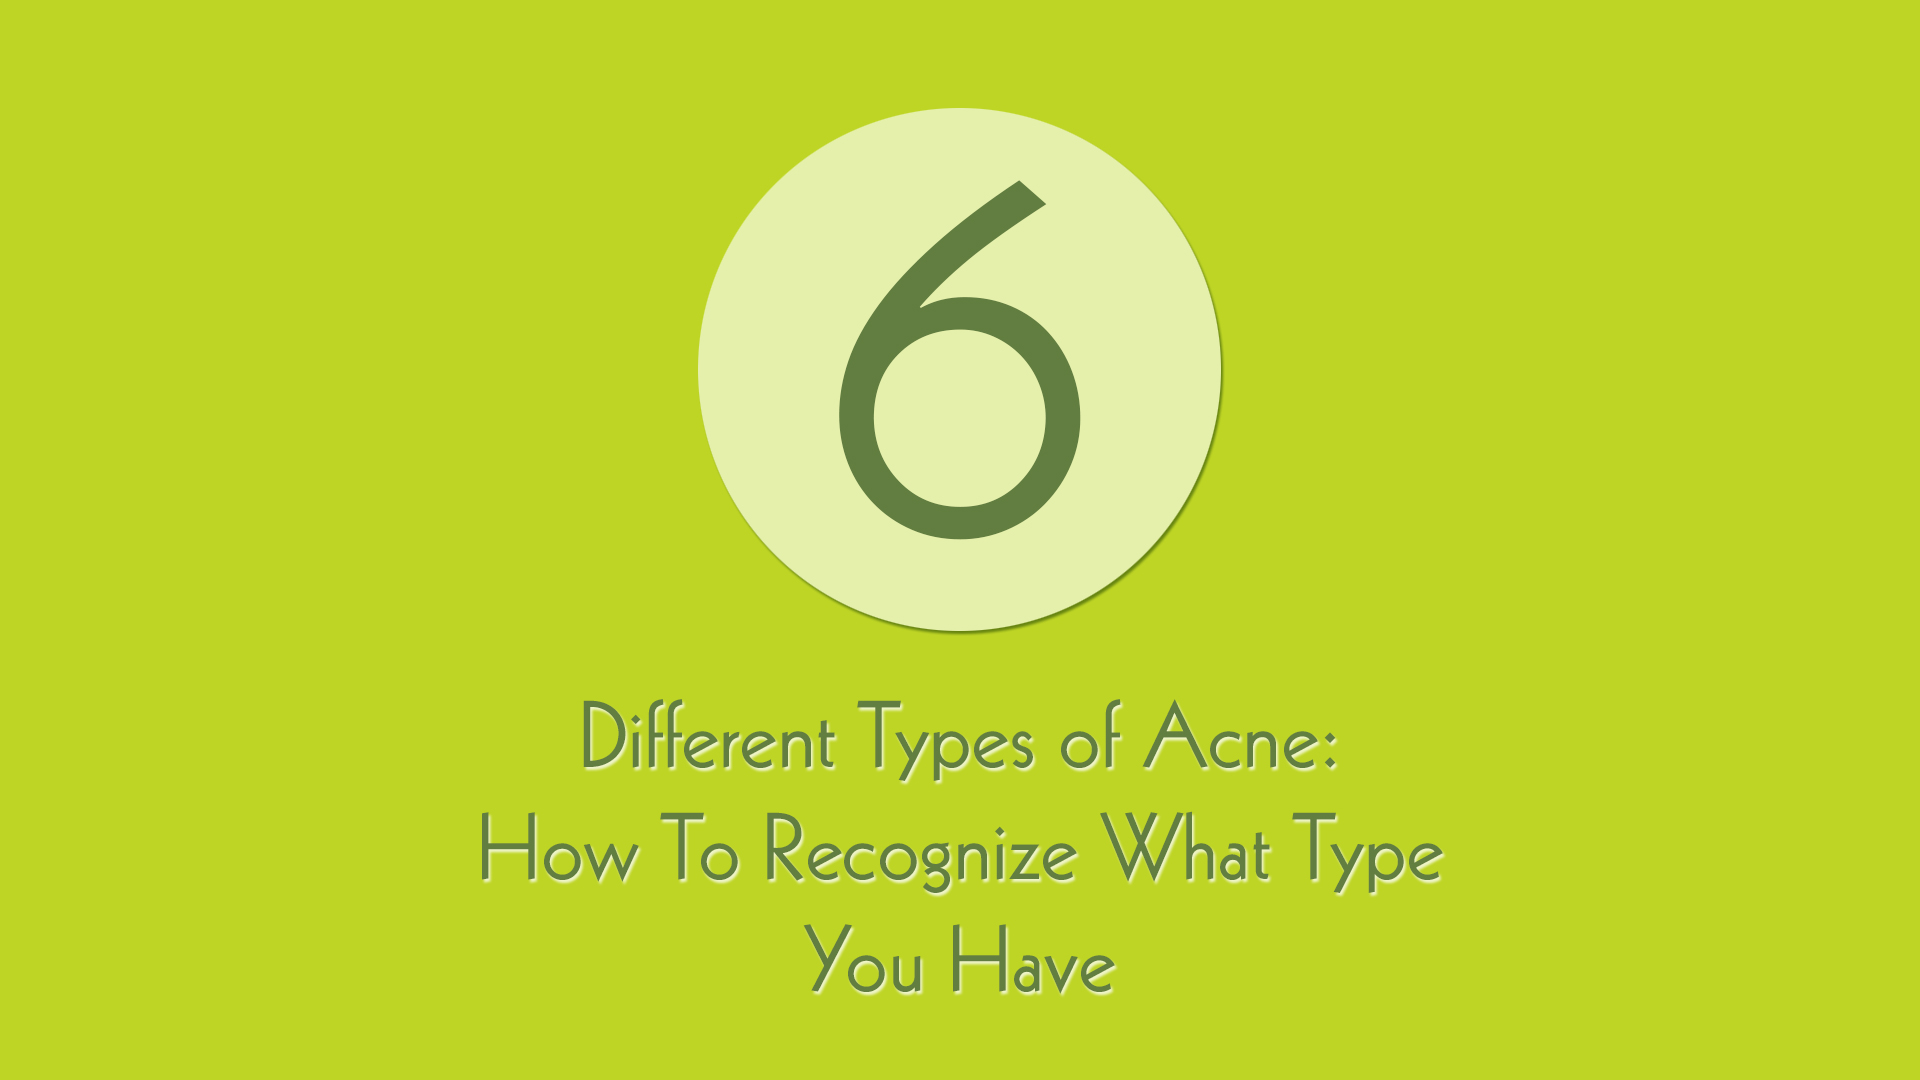 The Different Types of Acne: Which One Do You Have?